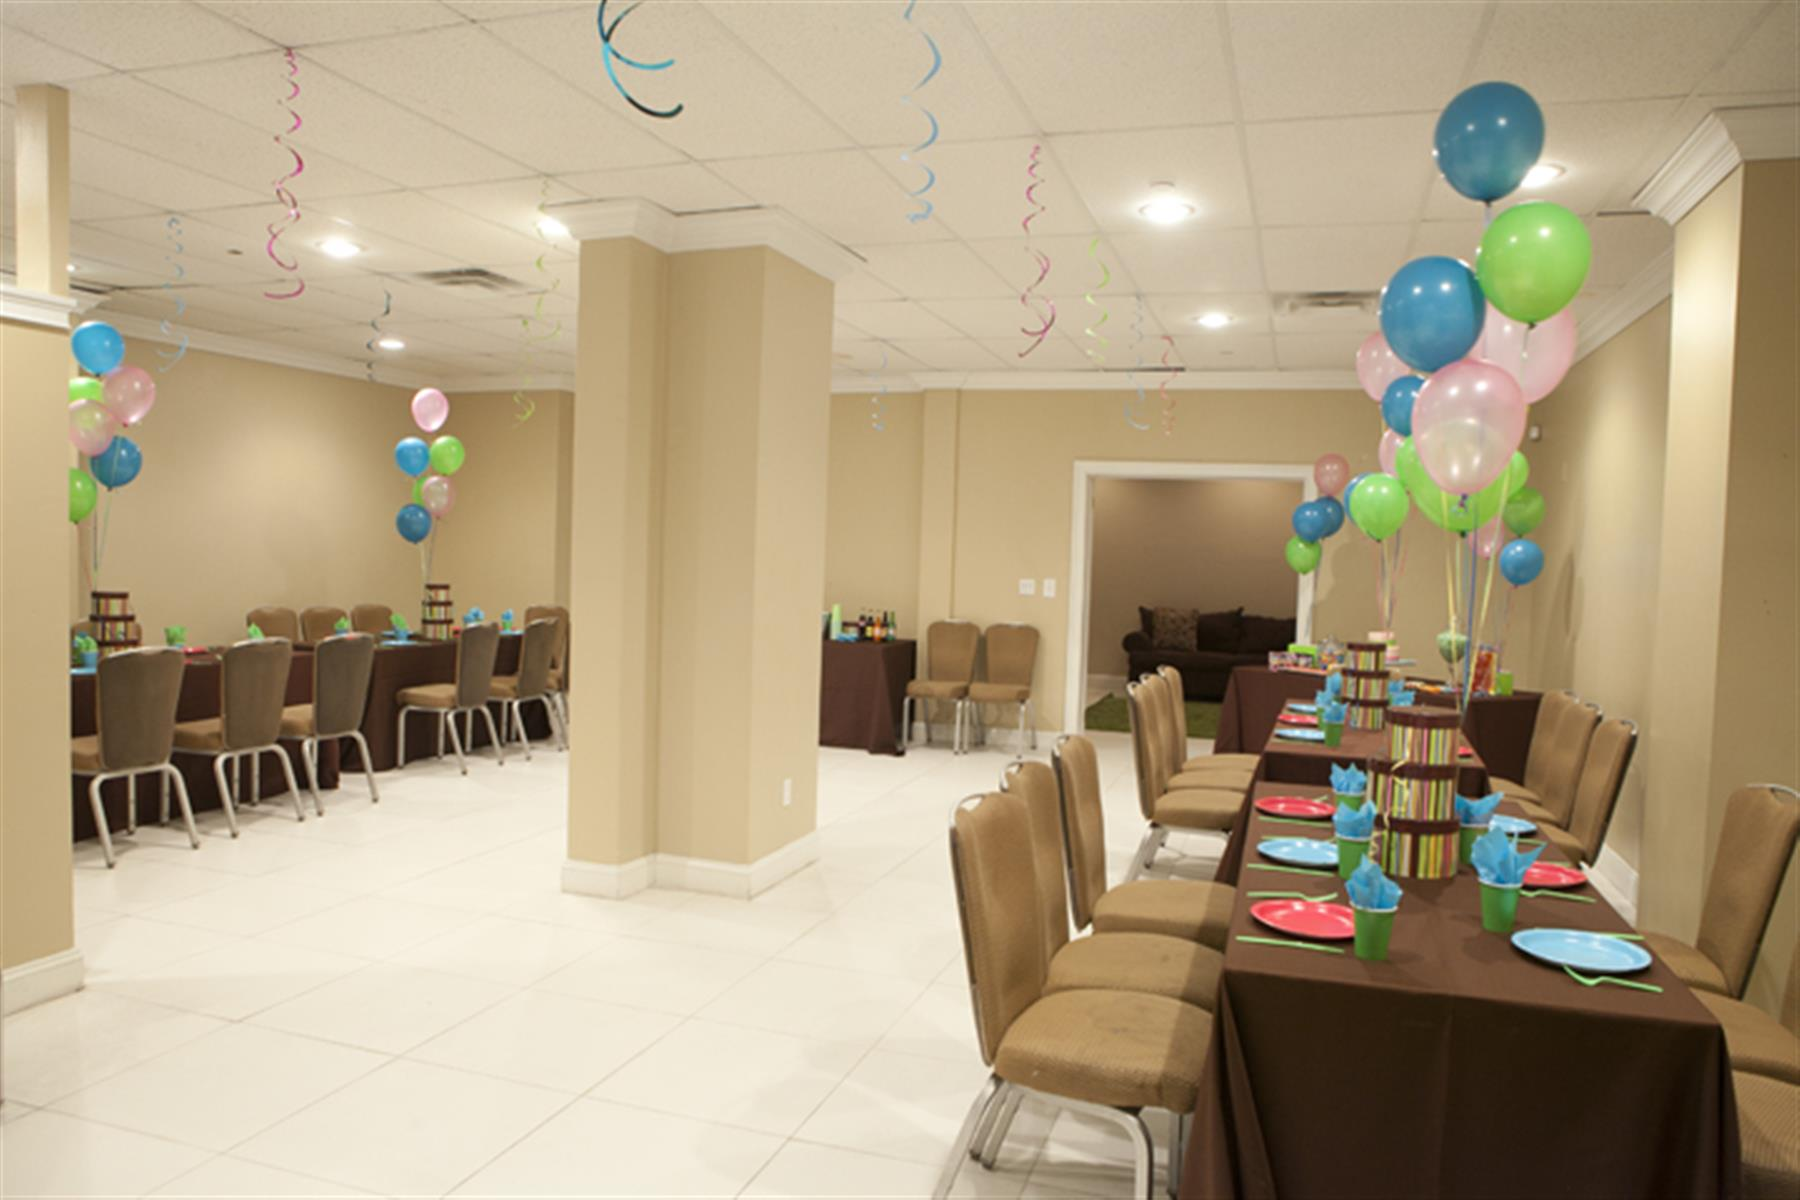 Coco Le Vu Candy Shop & Event Space - Private Event Space